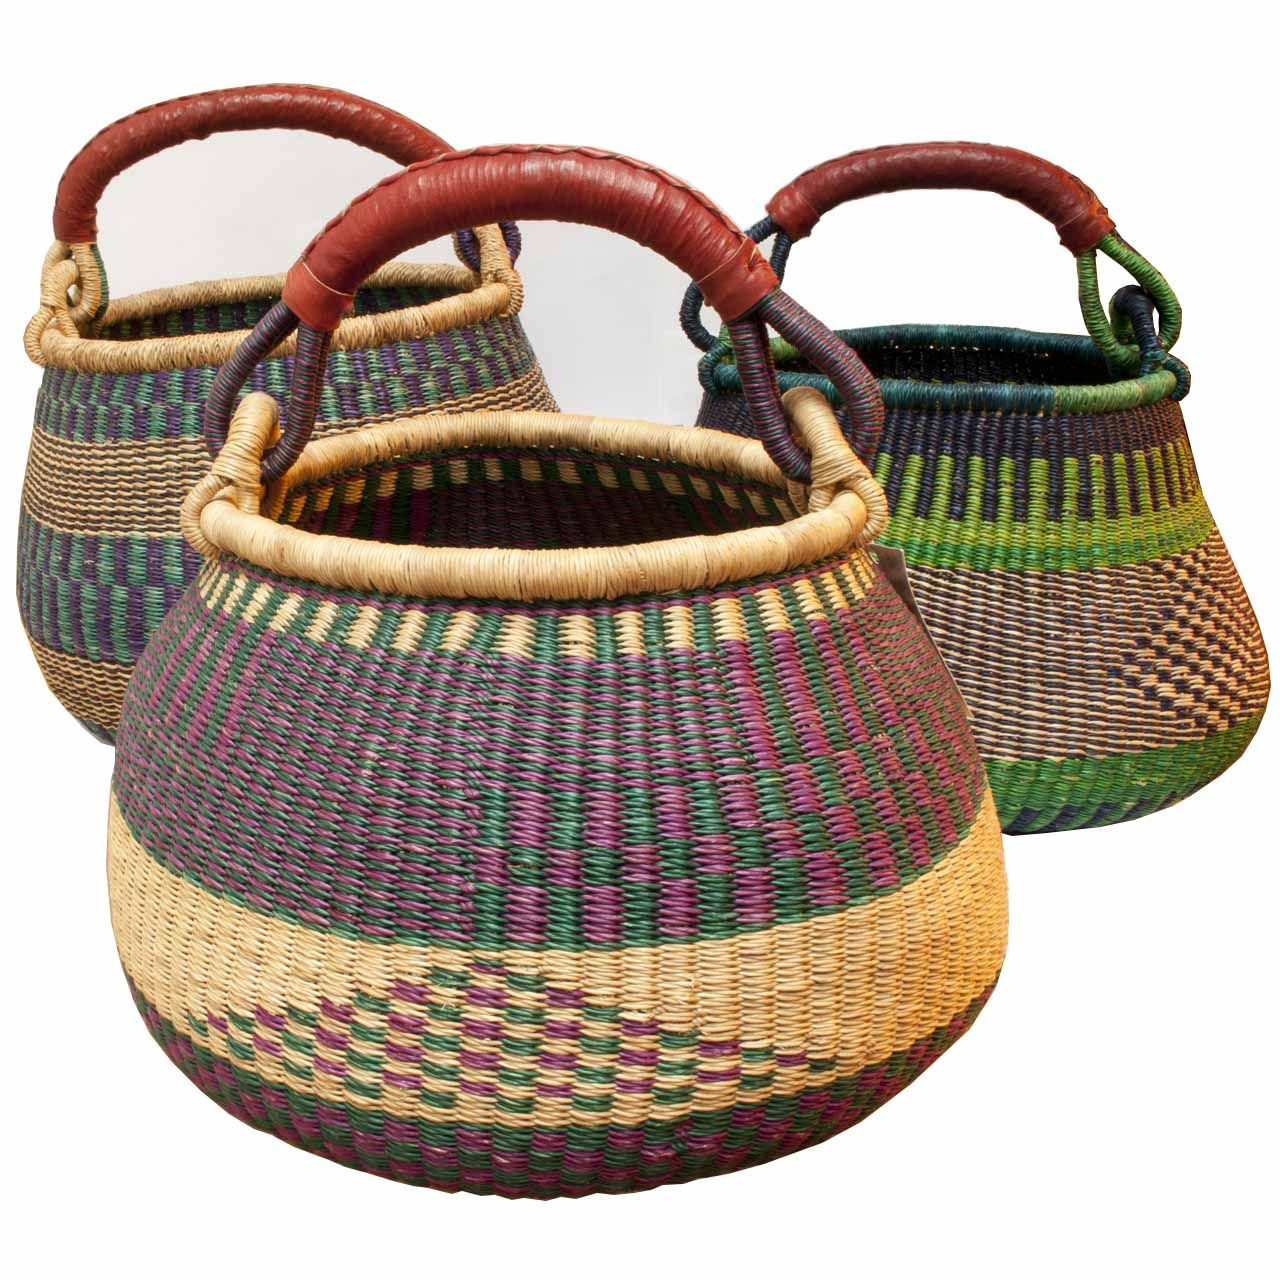 African Baskets: Bolga Basket, Gambibgo Pot With Goatskin Handle